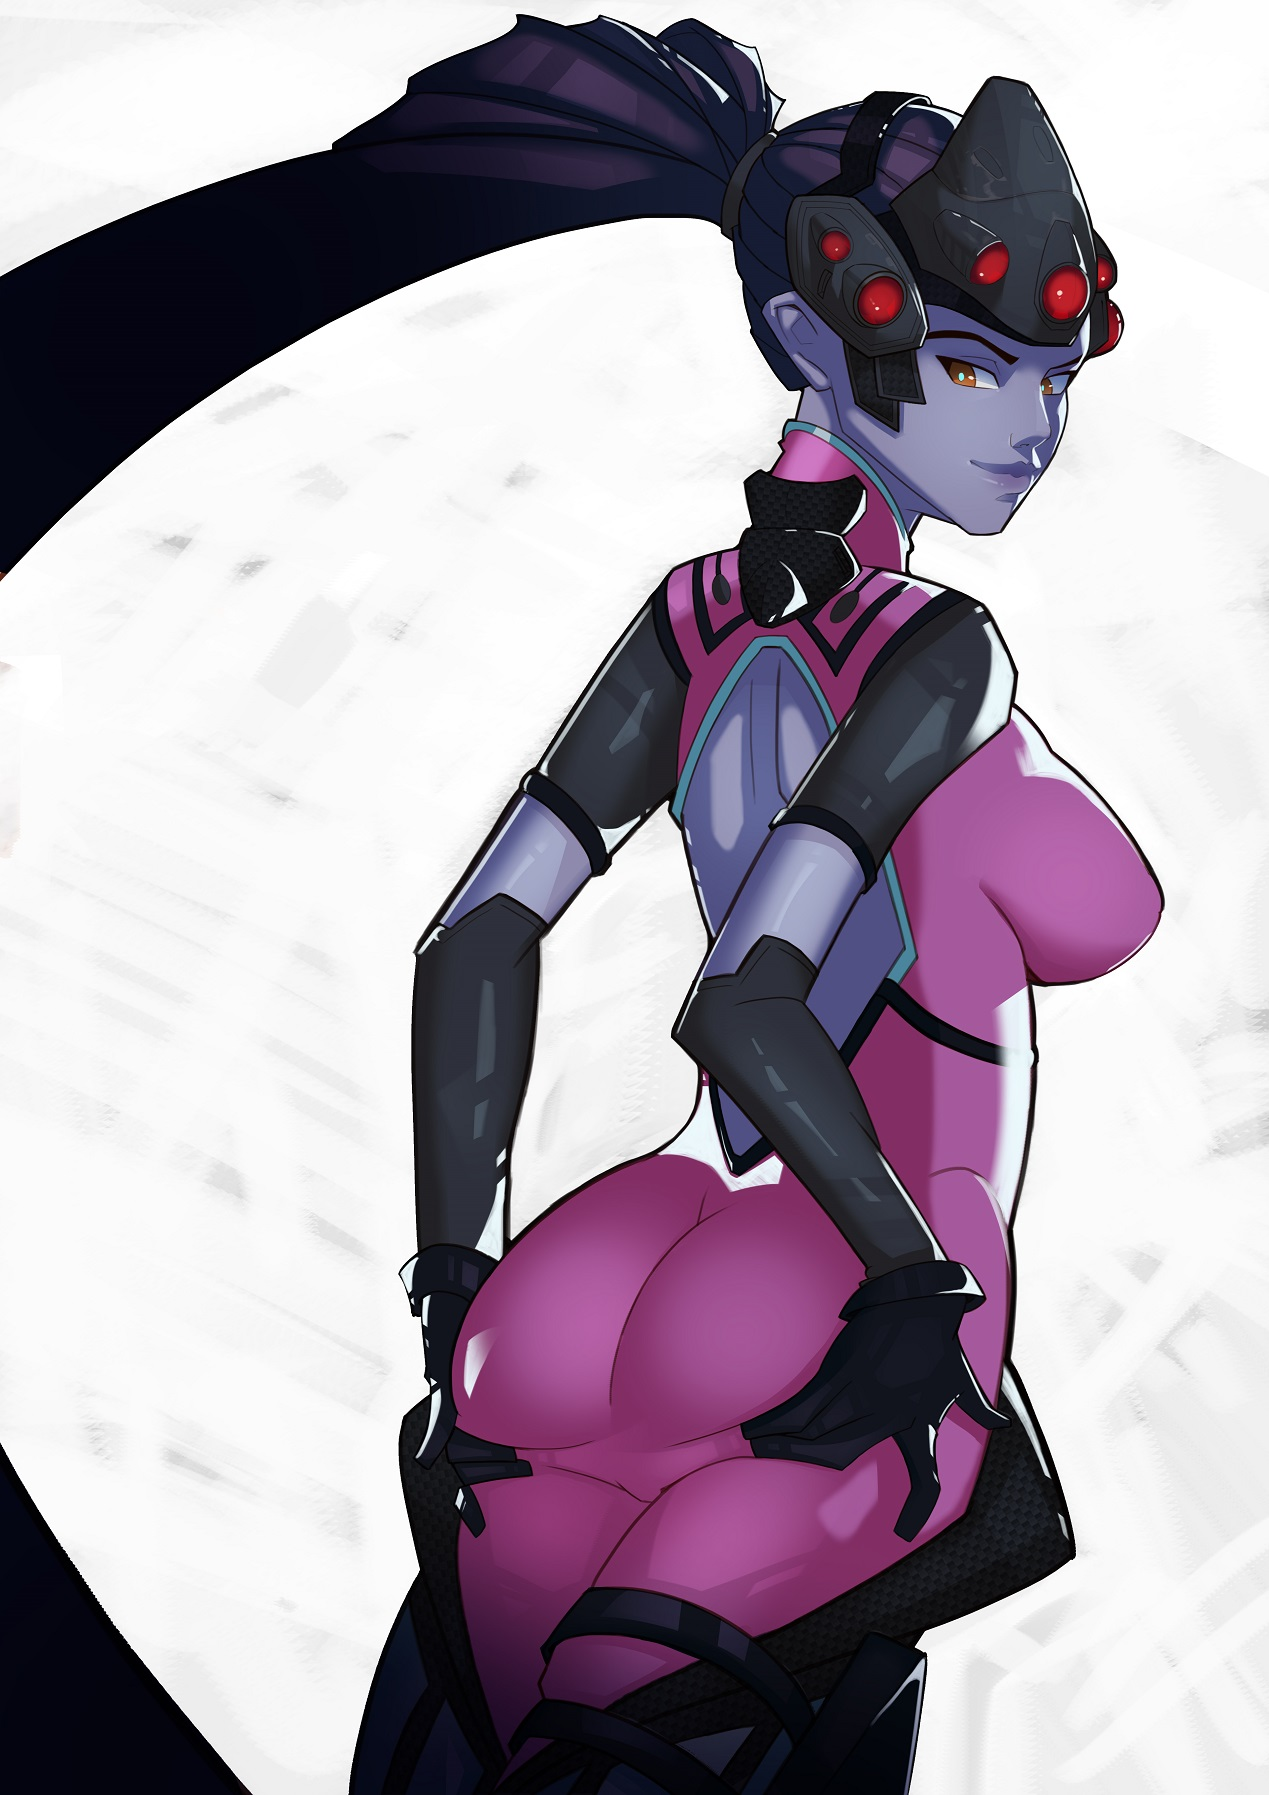 Overwatch Porn Image Collection - Overwatch Hentai